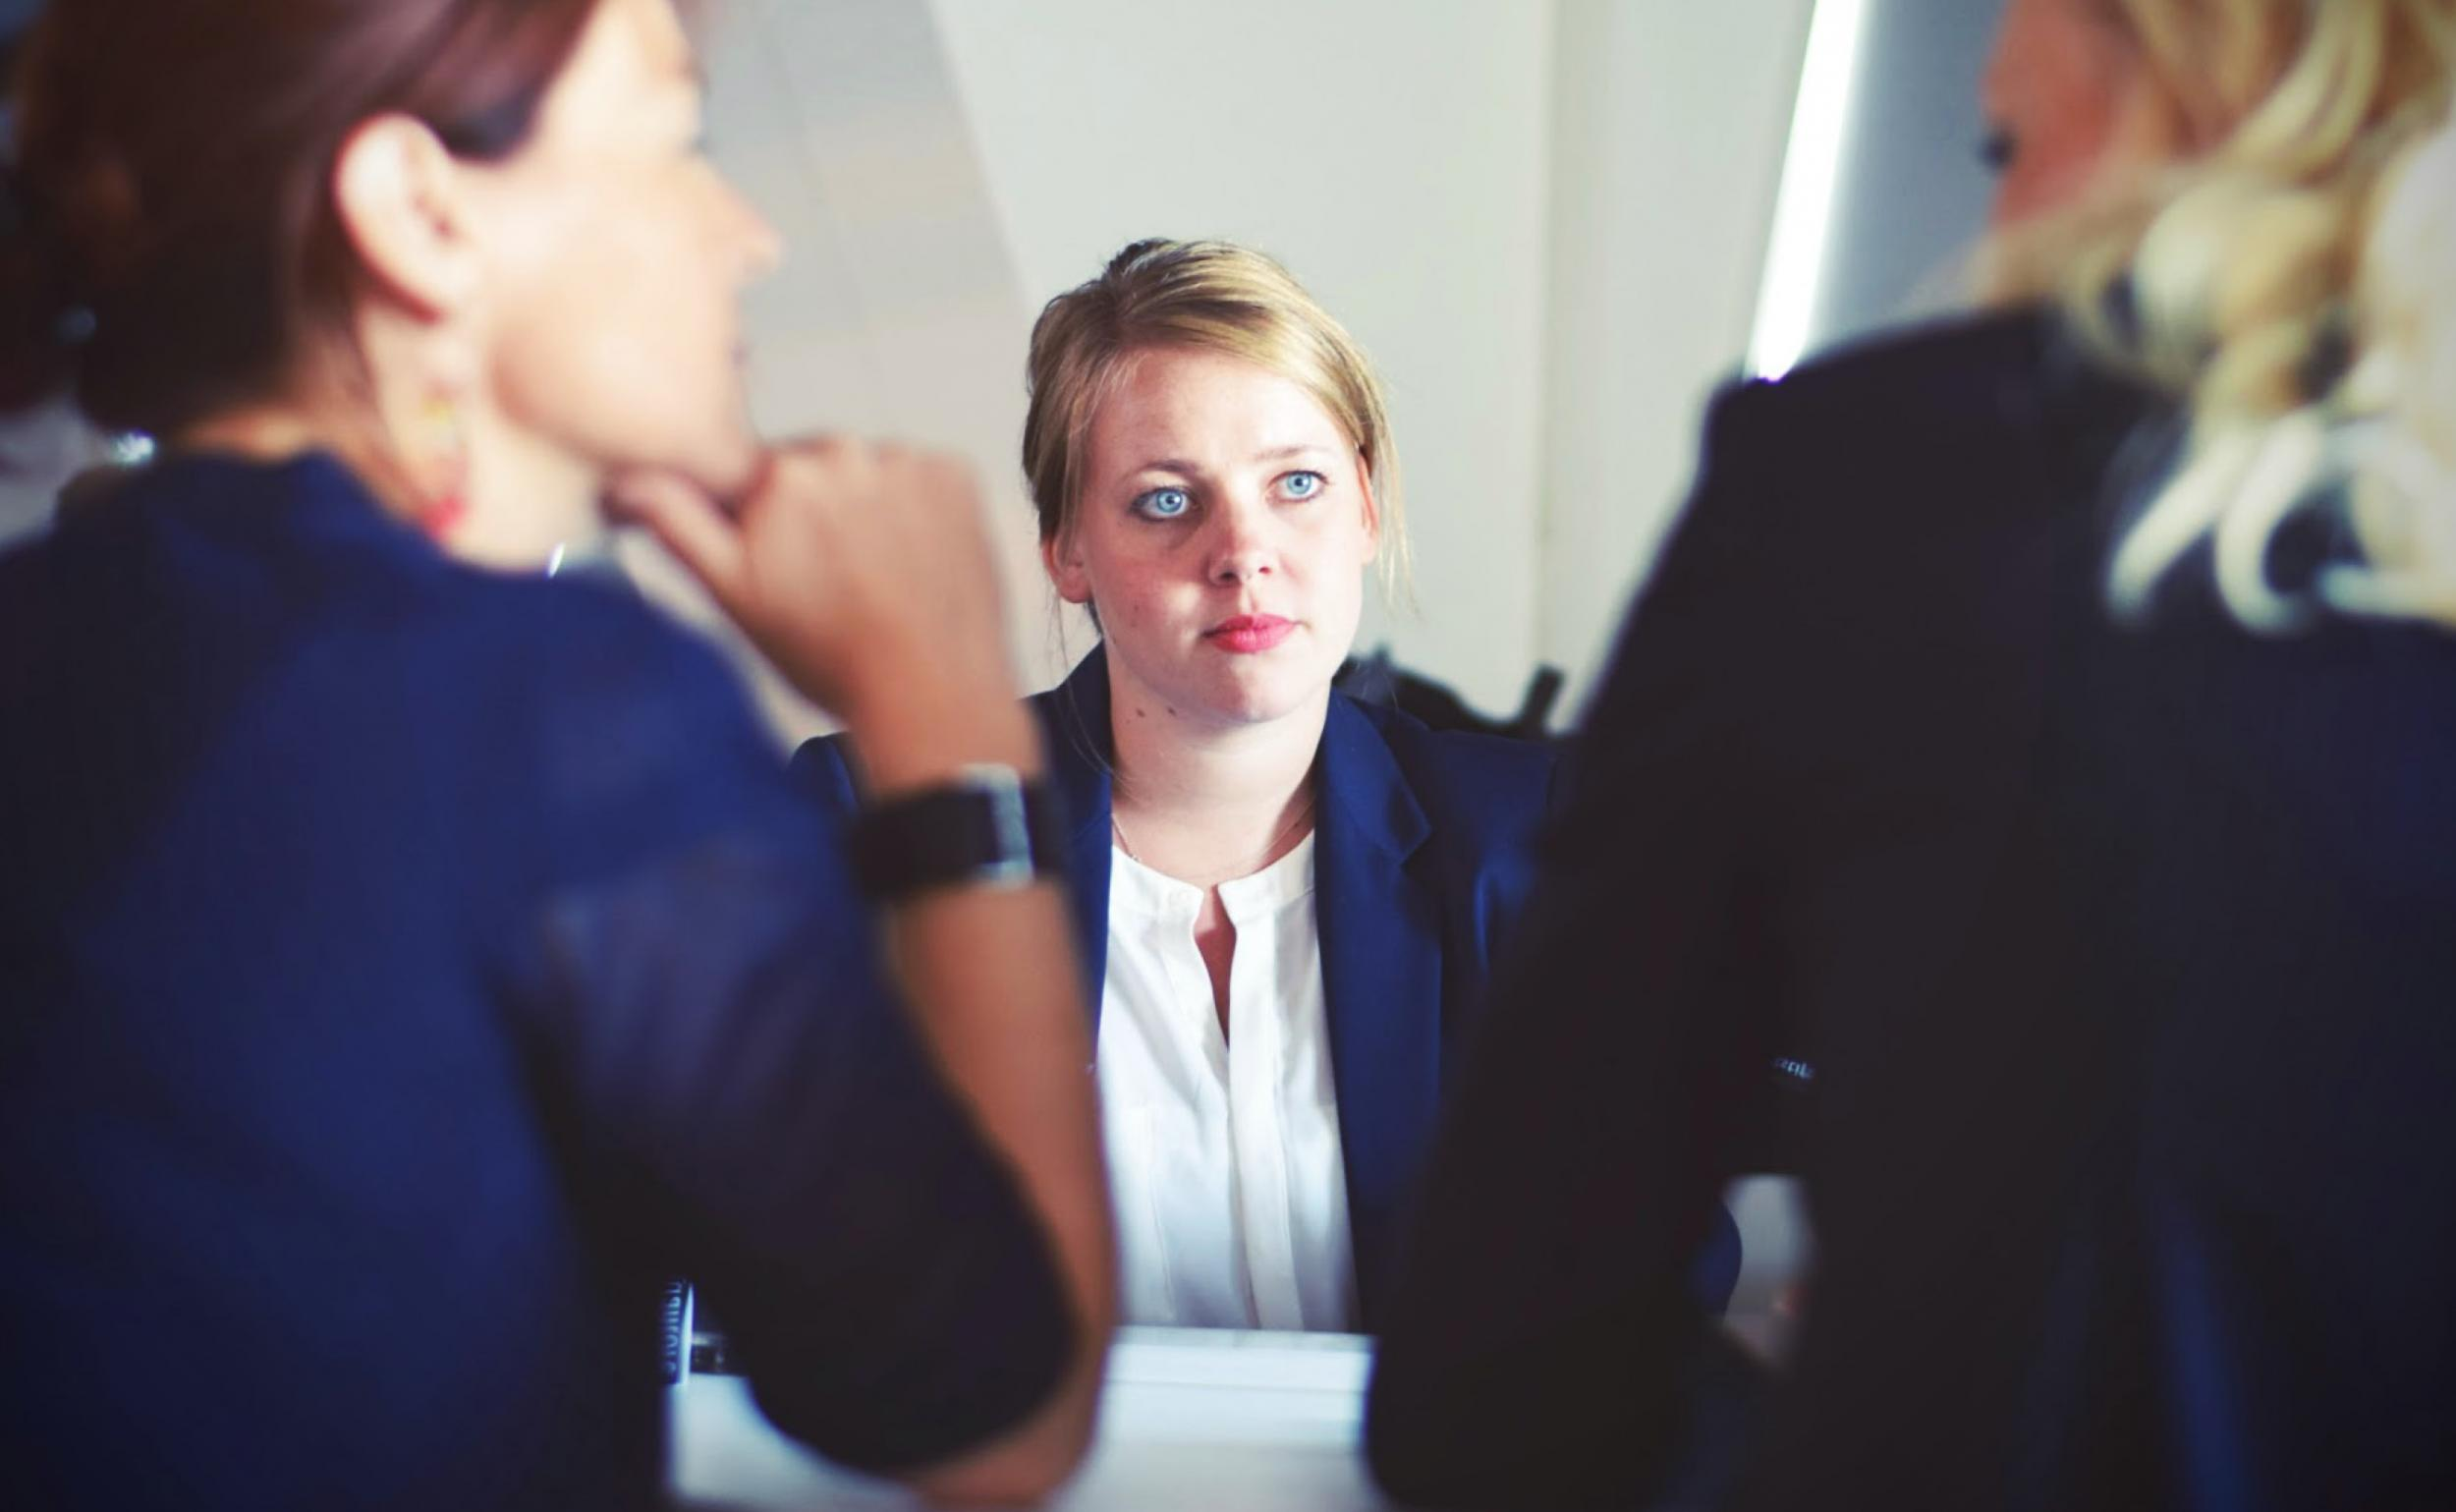 ace your job interview questions